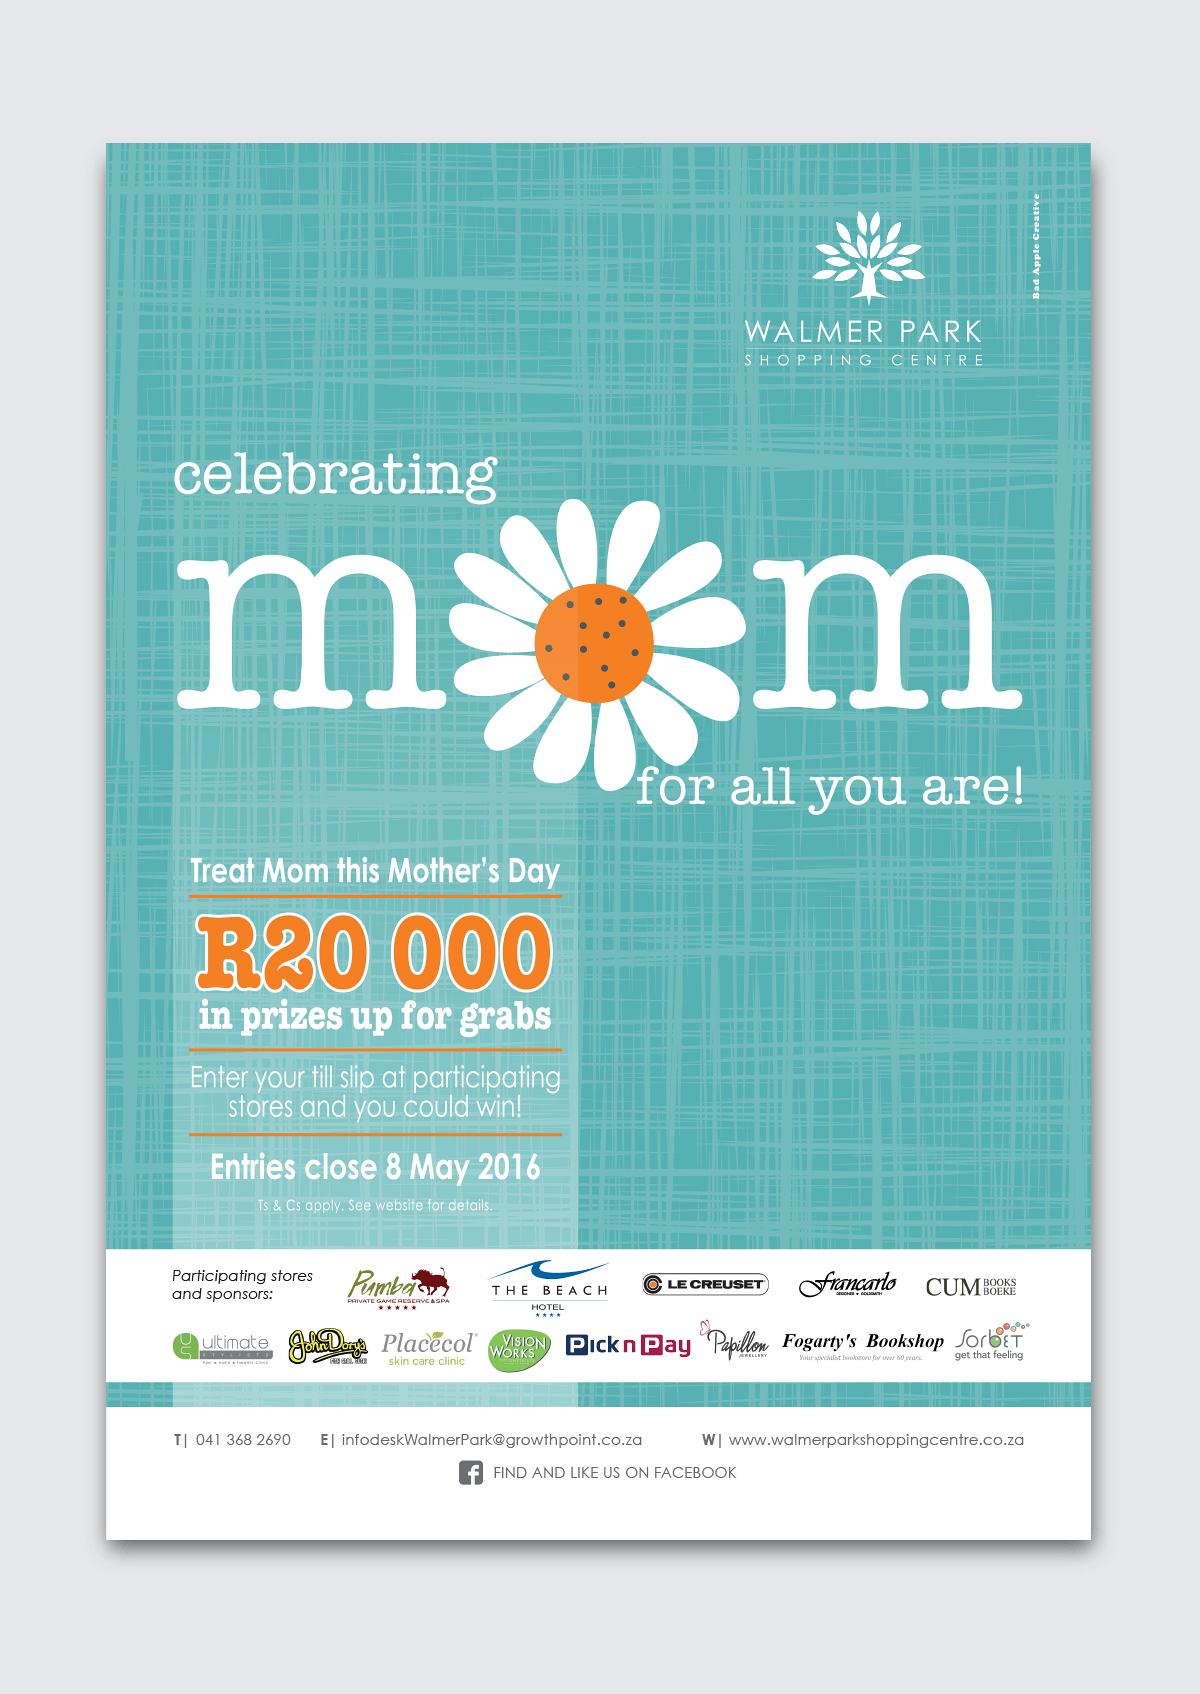 Walmer-Park-Page-Icon-Mothers-Day-Poster-Flower-14